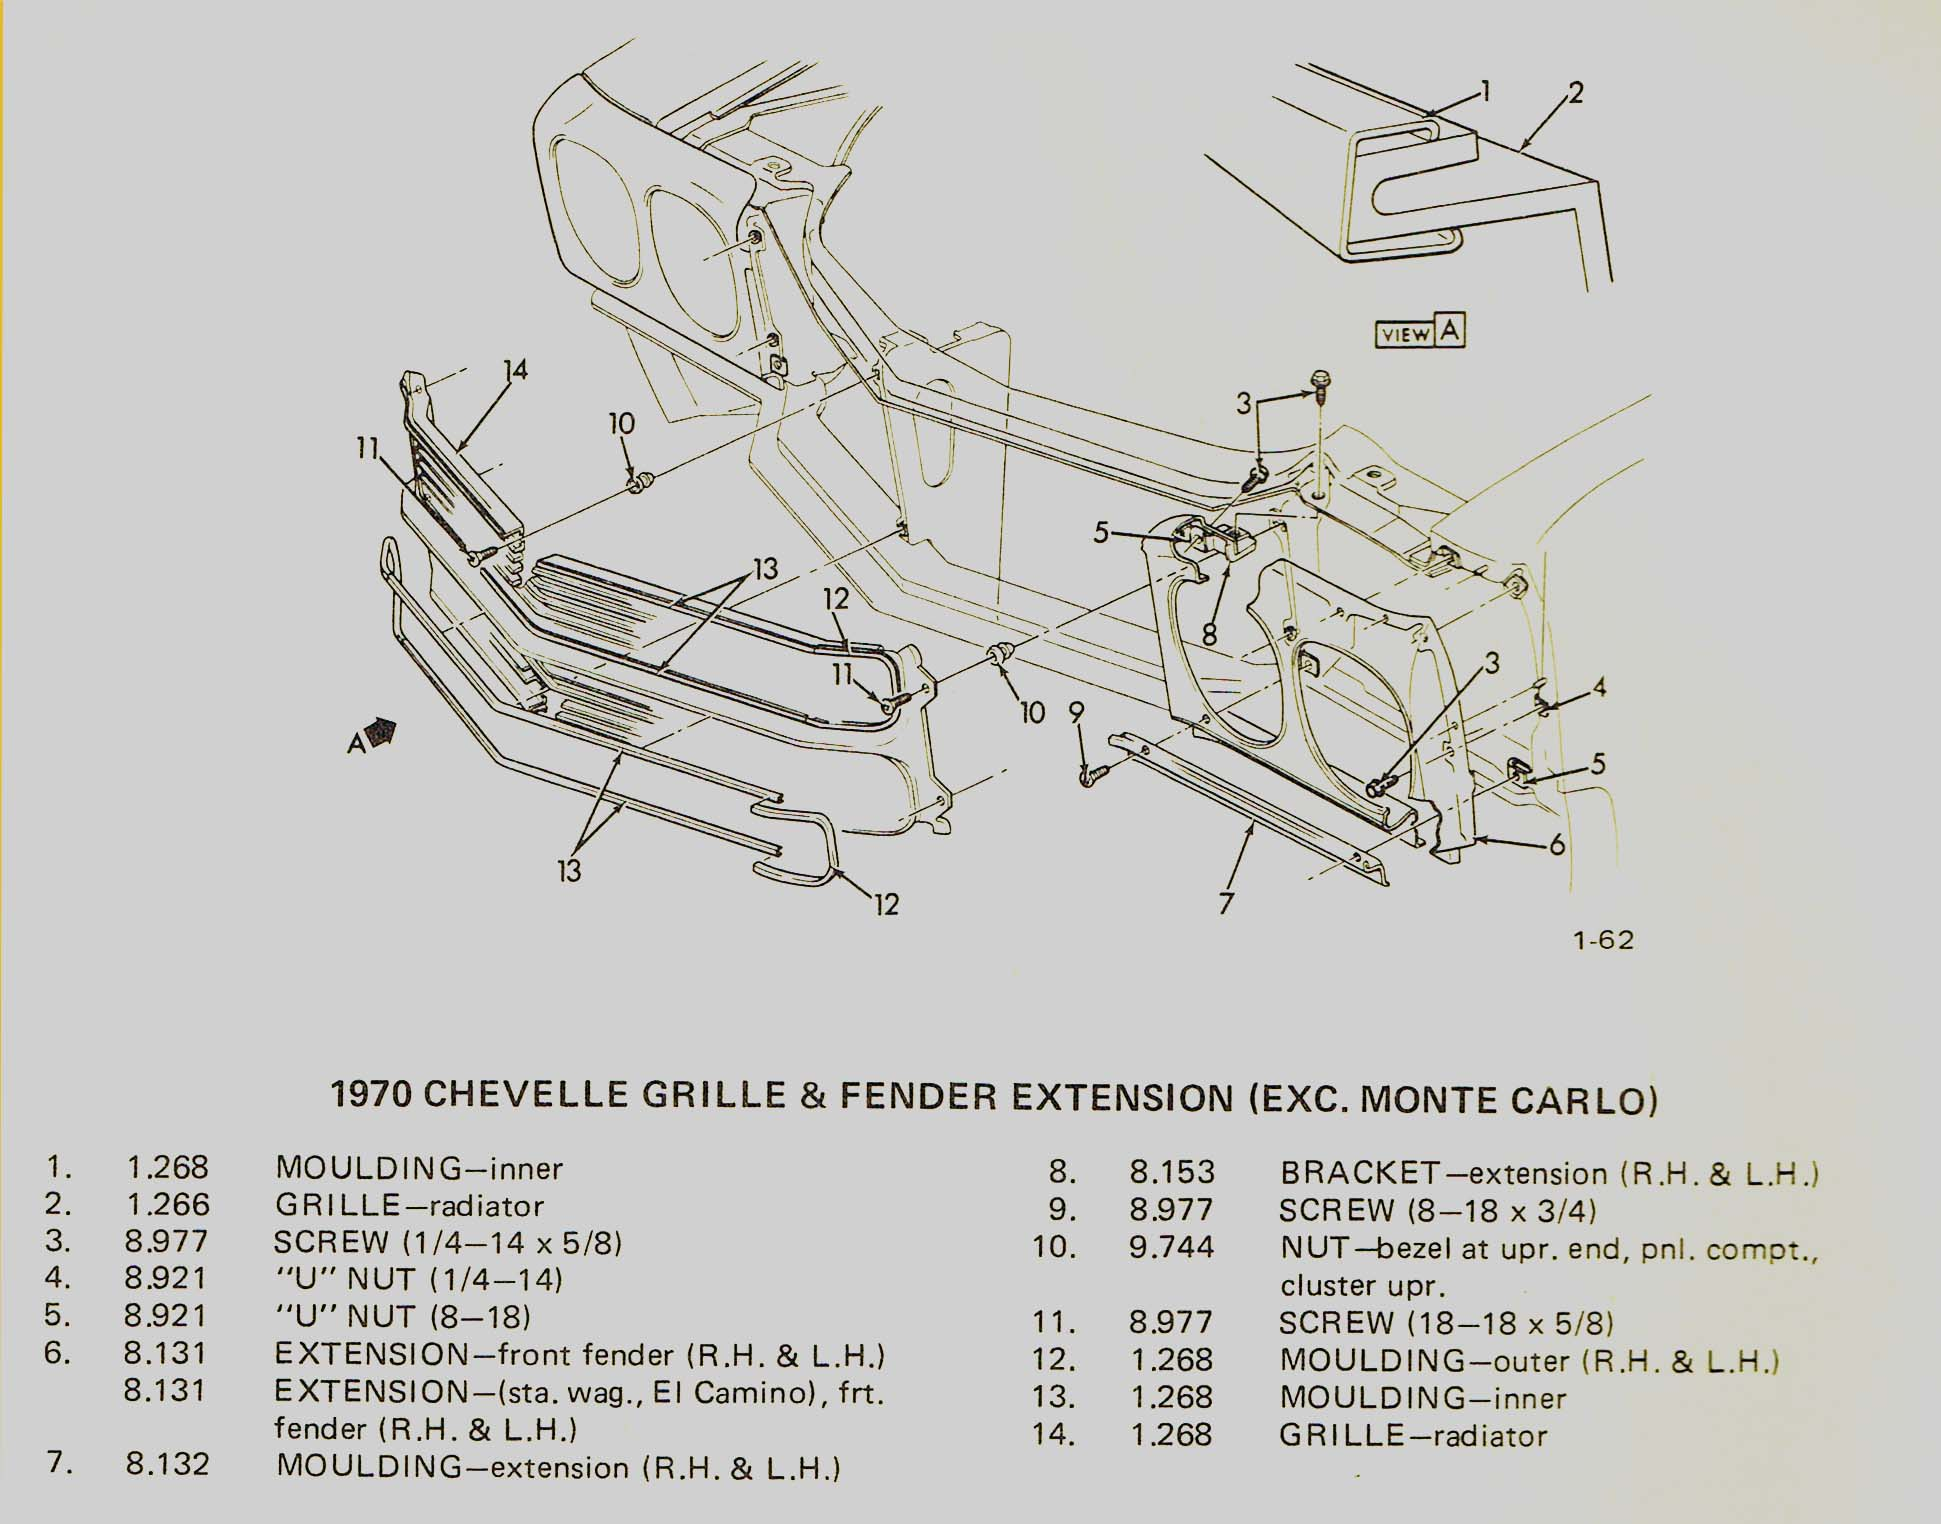 350 Alternator Wiring Diagram likewise 03 Silverado Stereo Wiring Harness Diagram also 7 Wire Trailer Wiring Diagram For Silverado also 1994 Buick Lesabre Injector Wiring Diagram as well 2011 Chevy Equinox Fuse Box Diagram. on chevrolet wiring diagrams free download